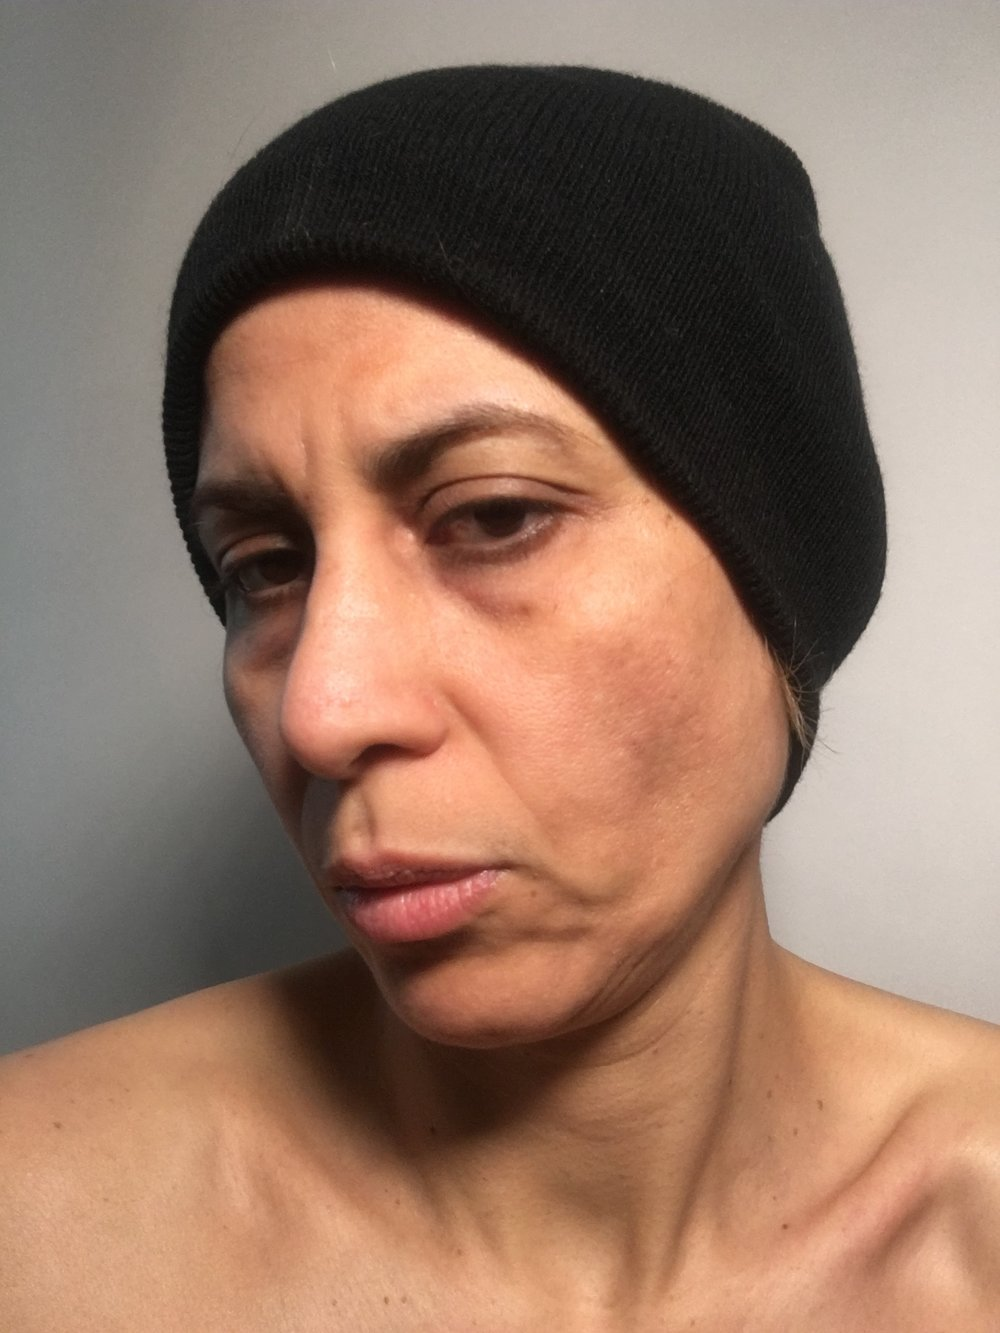 "Me, after my diagnosis, when my problem started to change my appearance. At some point, I had ""holes"" of missing hair on top of my head. My skin started to show age spots and become saggy. I never showed up anywhere without makeup and a hat or wig."